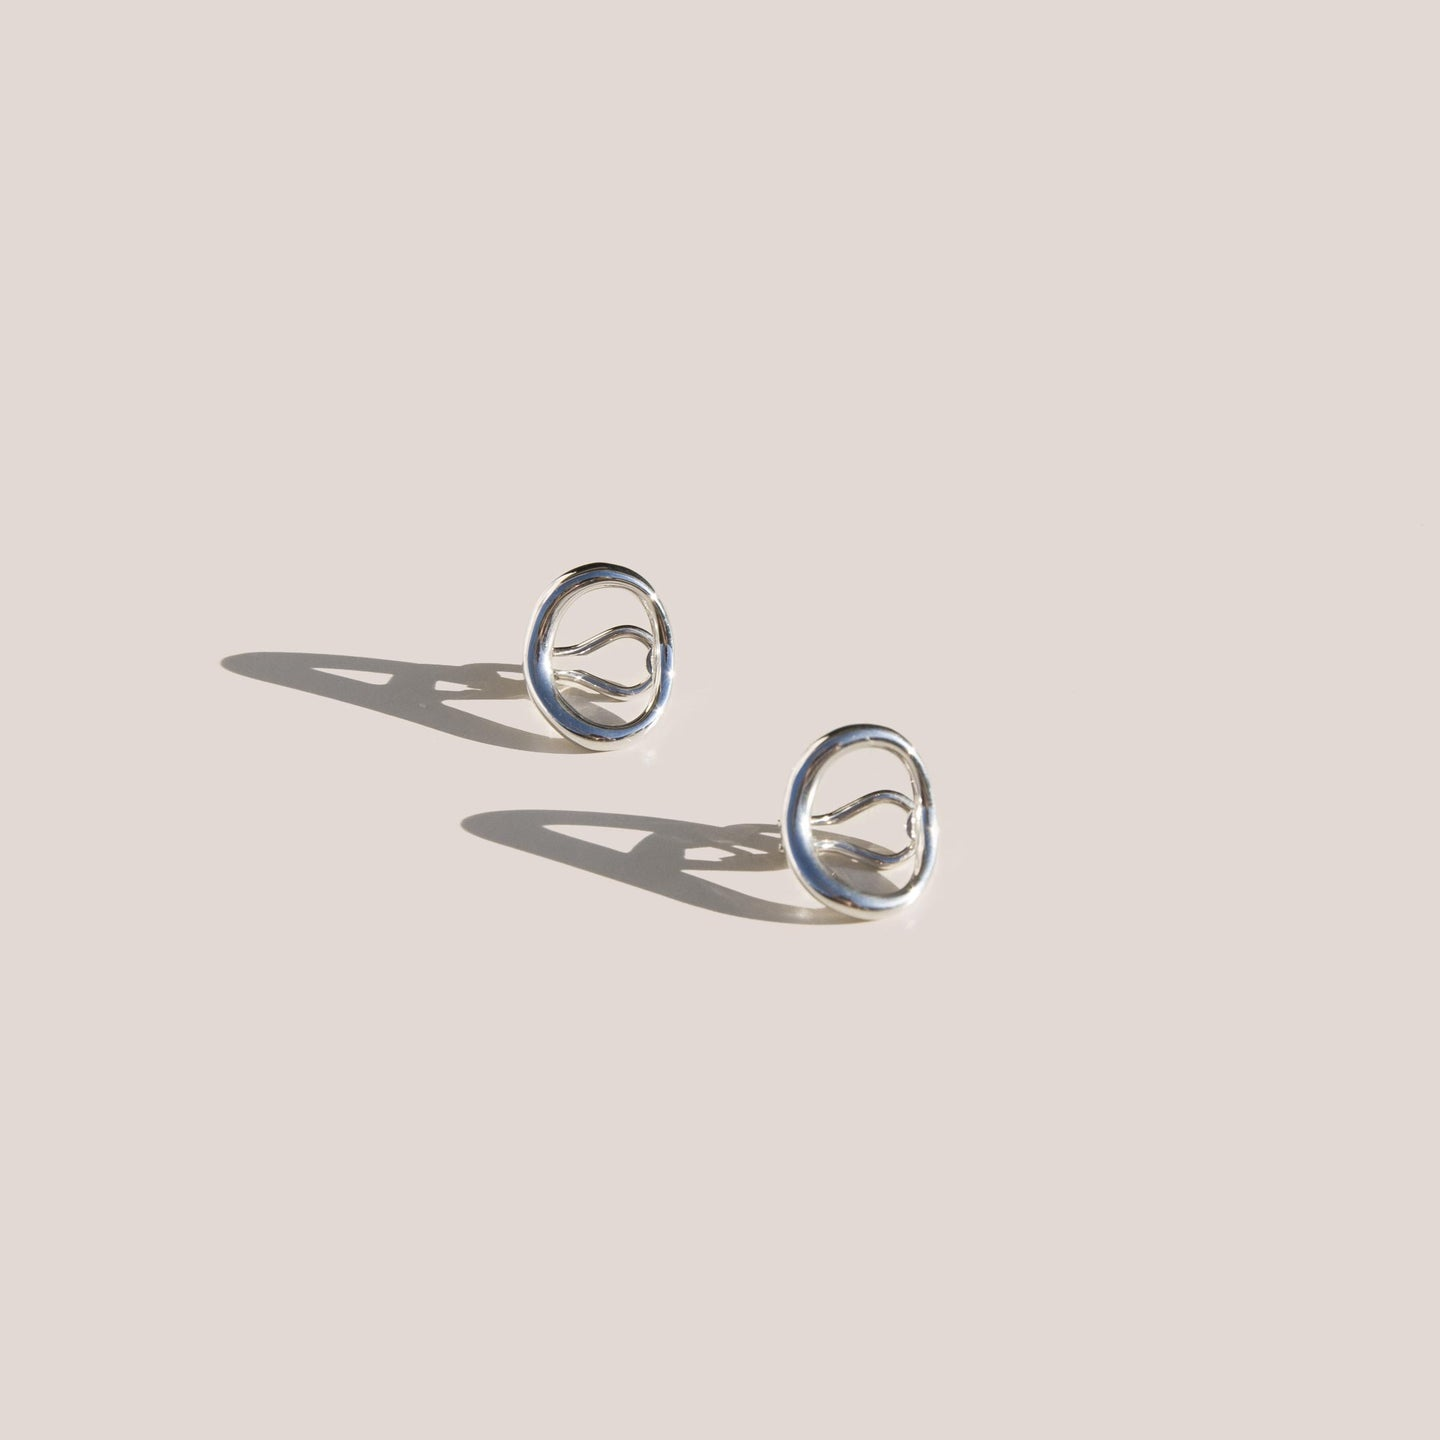 Charlotte Chesnais - Naho Earrings - Sterling Silver, available at LCD.